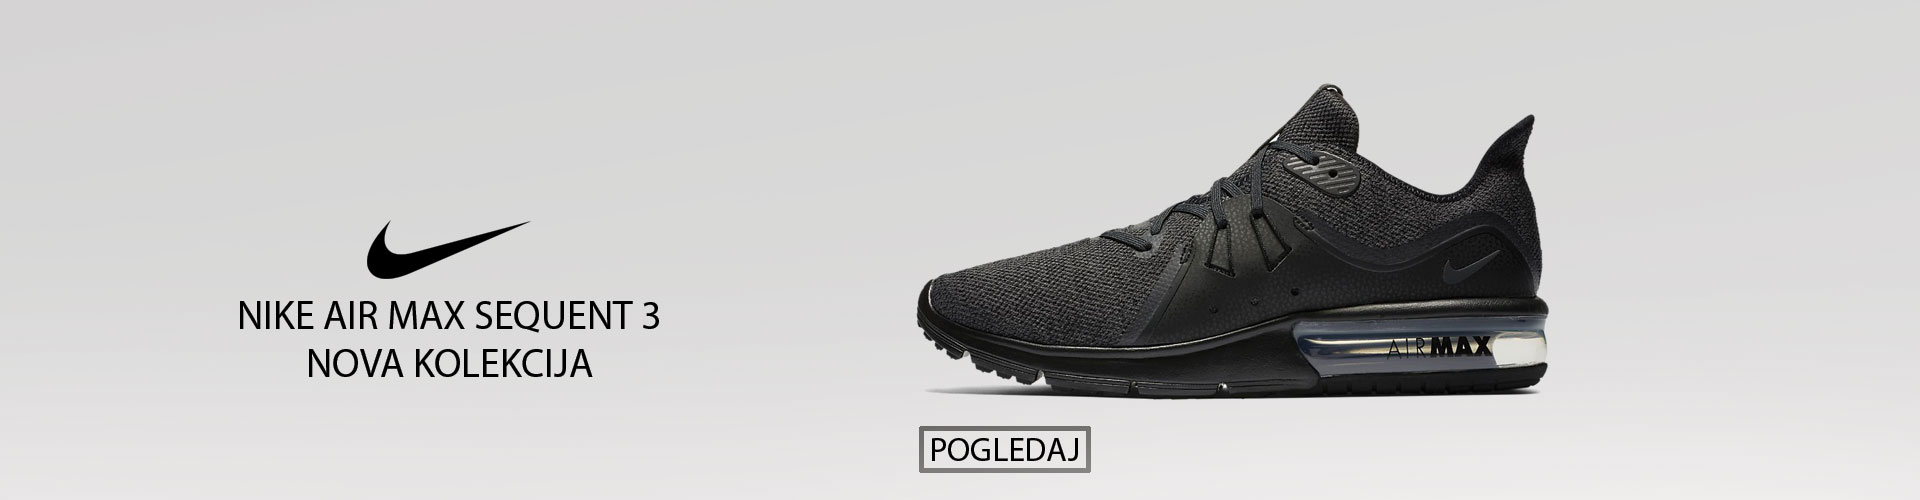 Nike Air max SEQUENT 3 muske patike